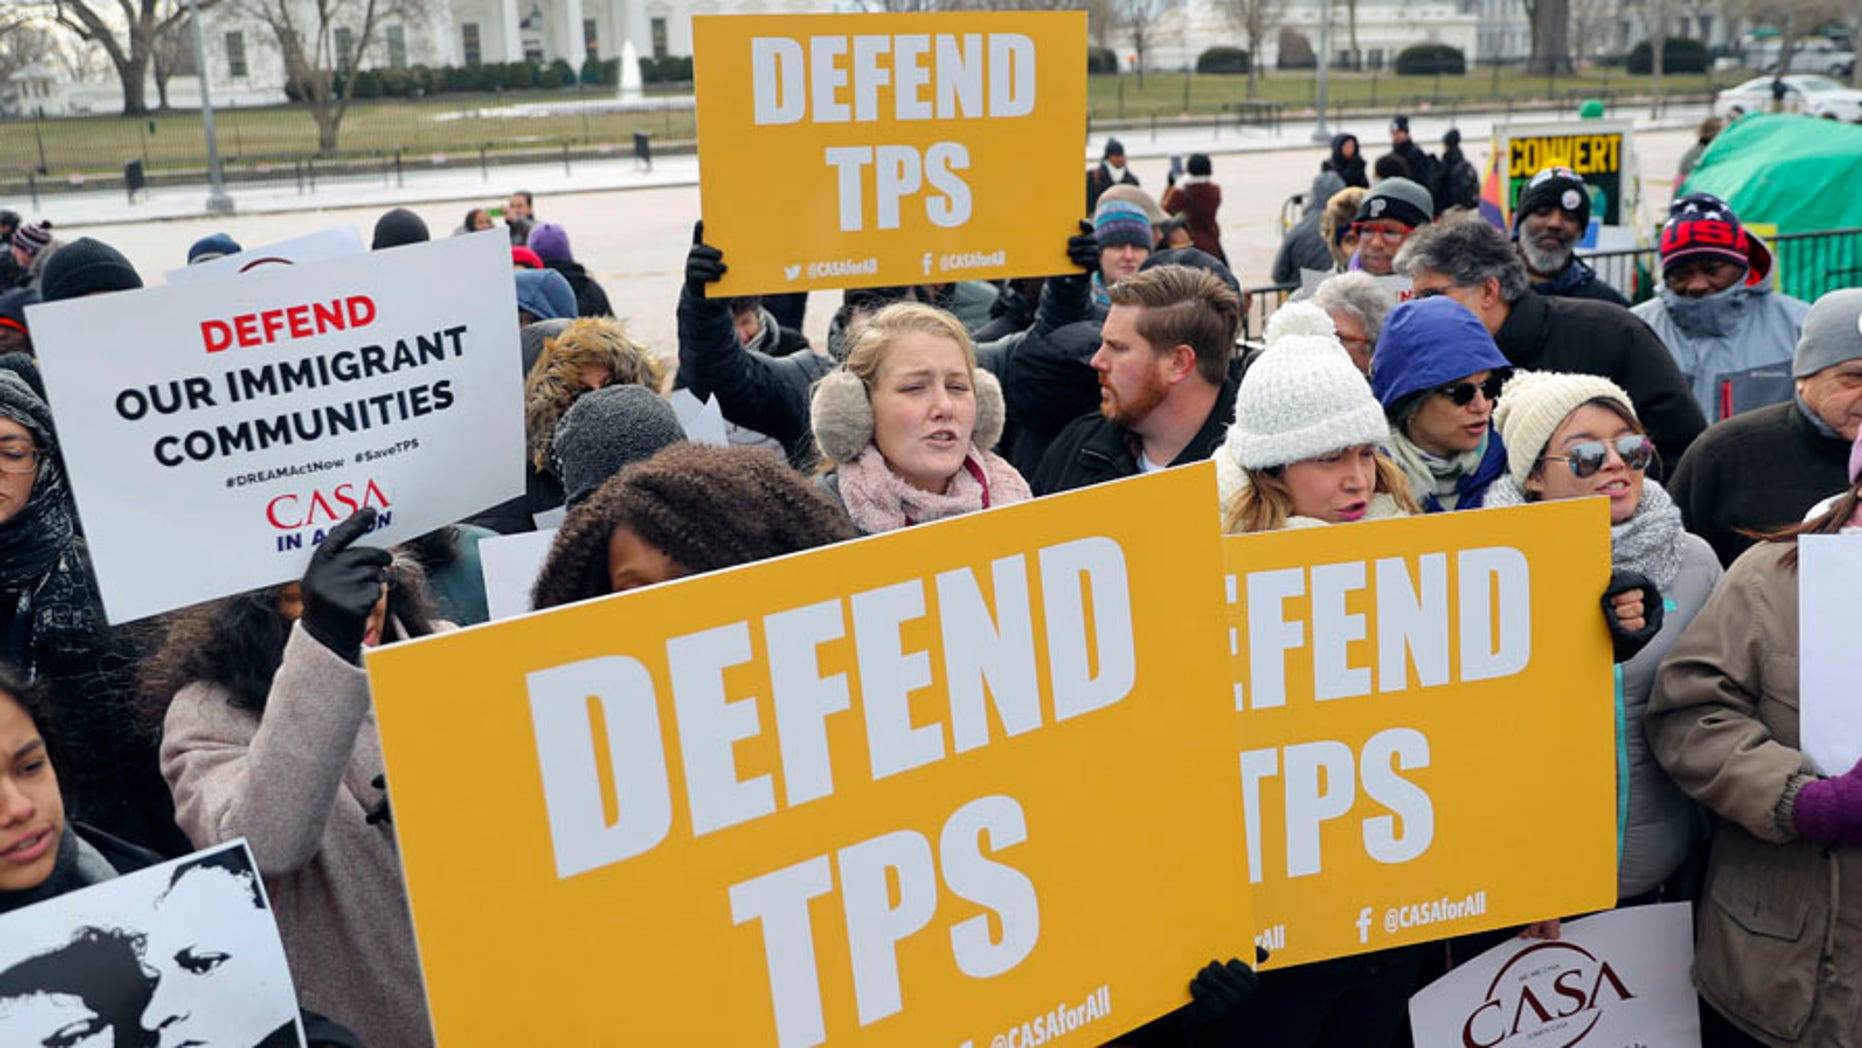 Demonstrators protest the Trump administration's decision to strip TPS for Salvadorans in the U.S.